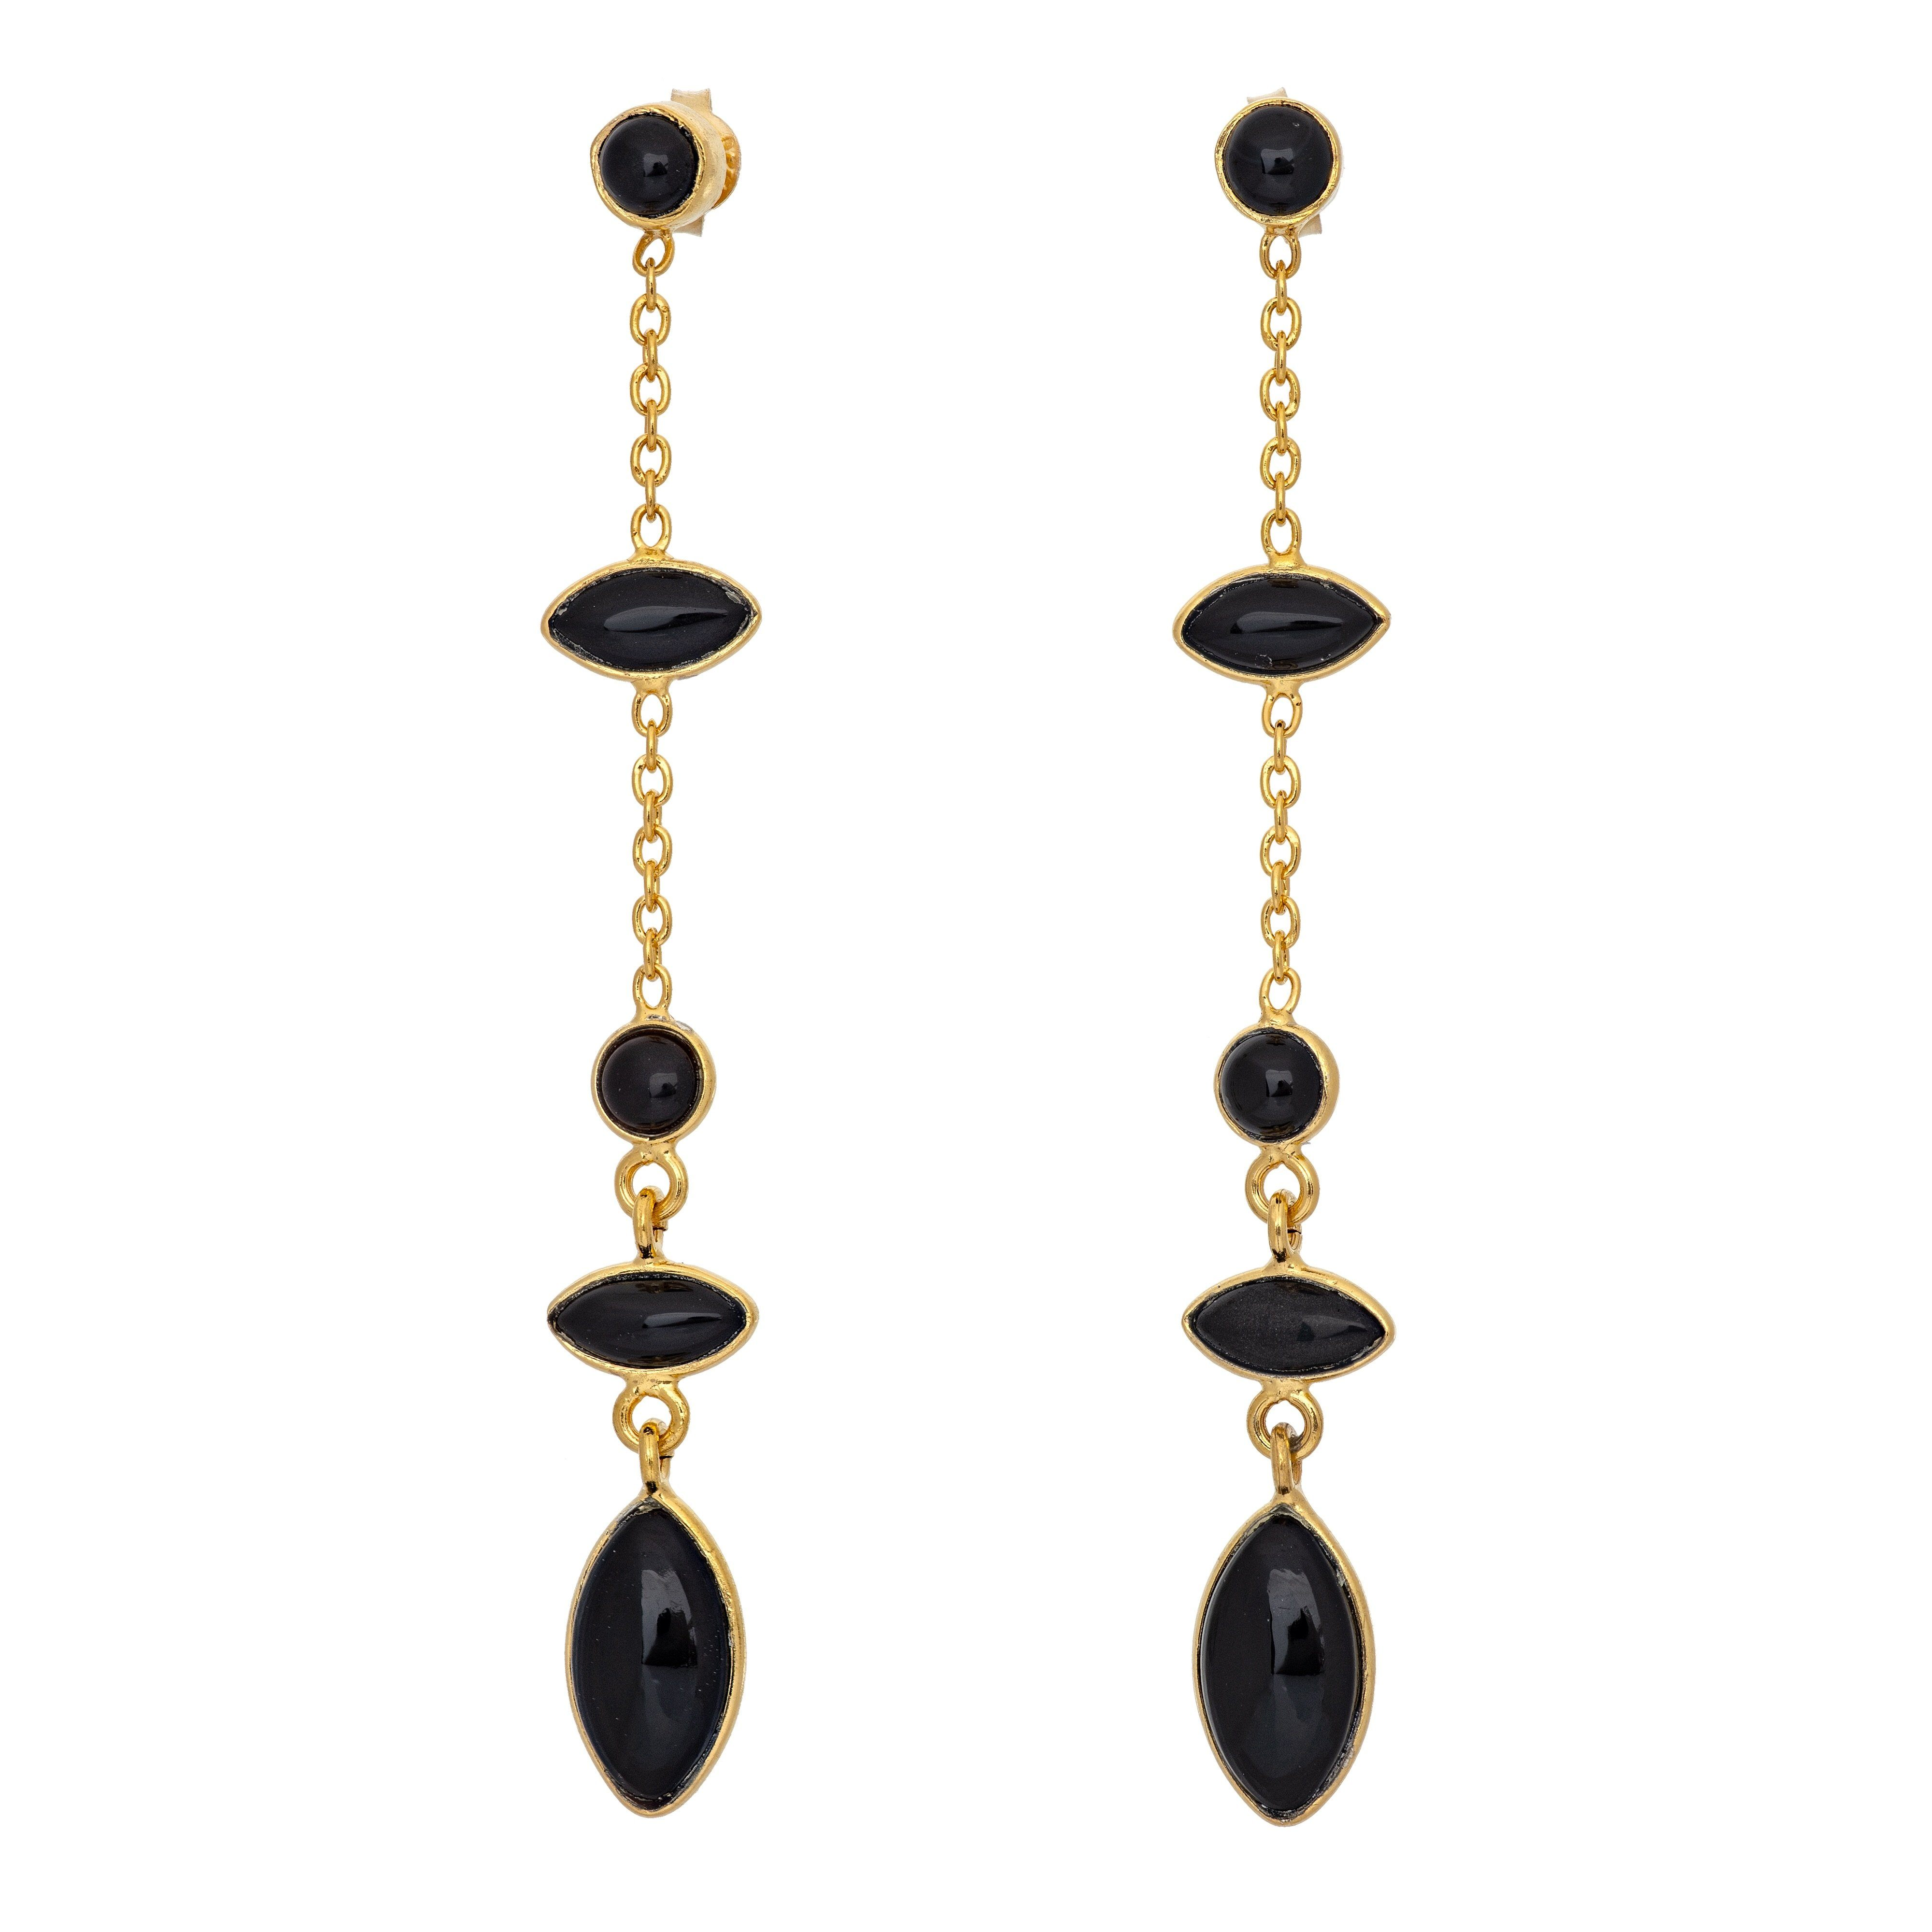 TA black onyx earrings - MadamSiam